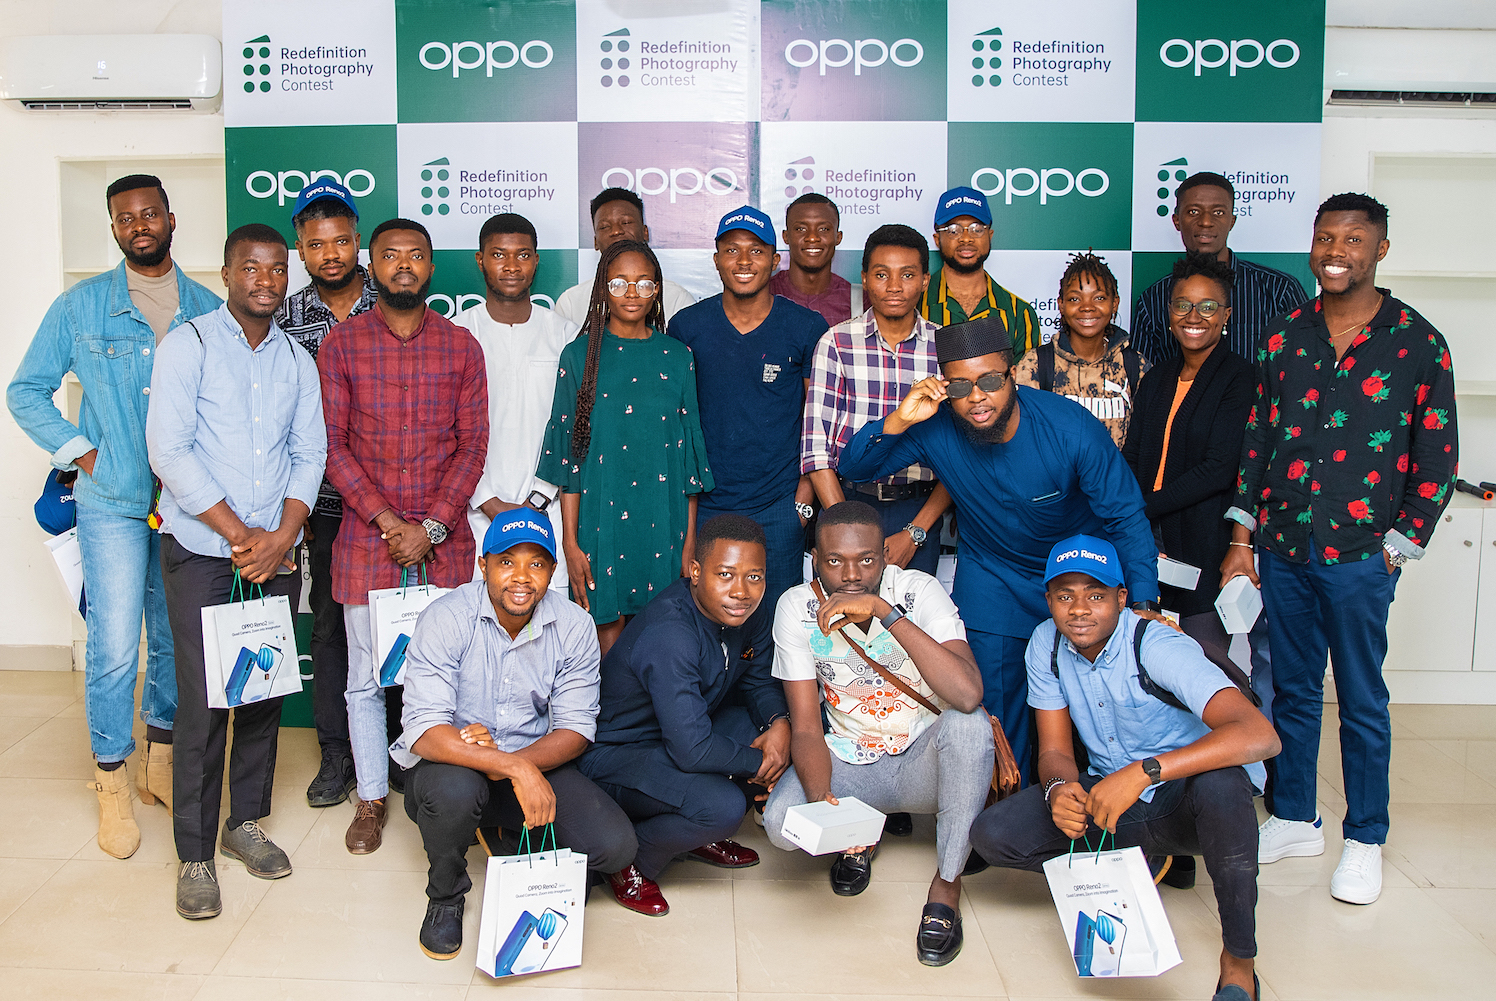 OPPO-Redefinition-Photography-Contest-Group-Photo.jpg